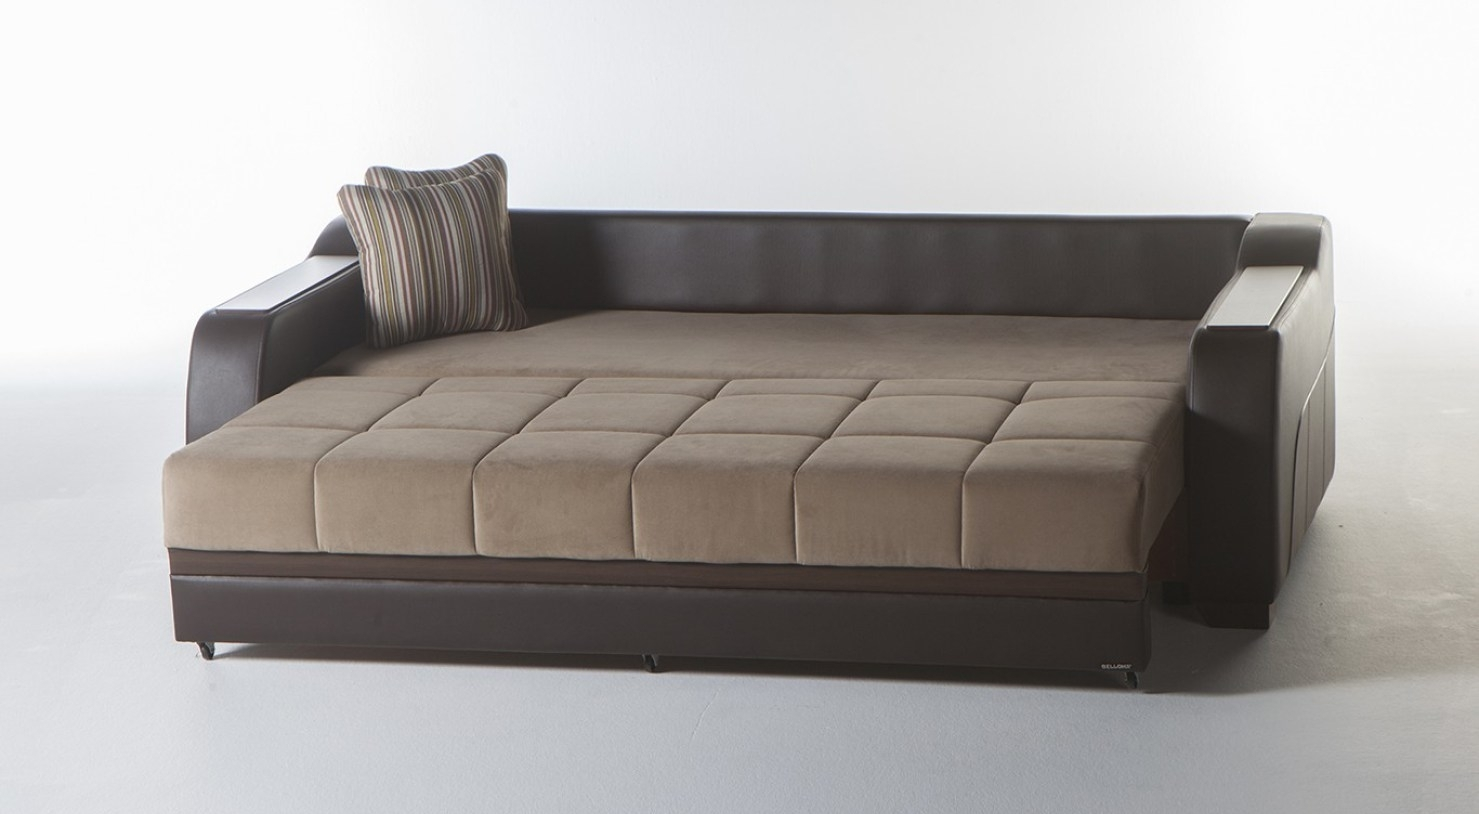 Hideaway Sofa Bed Philippines | Catosfera Regarding Sectional Sofas In Philippines (View 5 of 10)